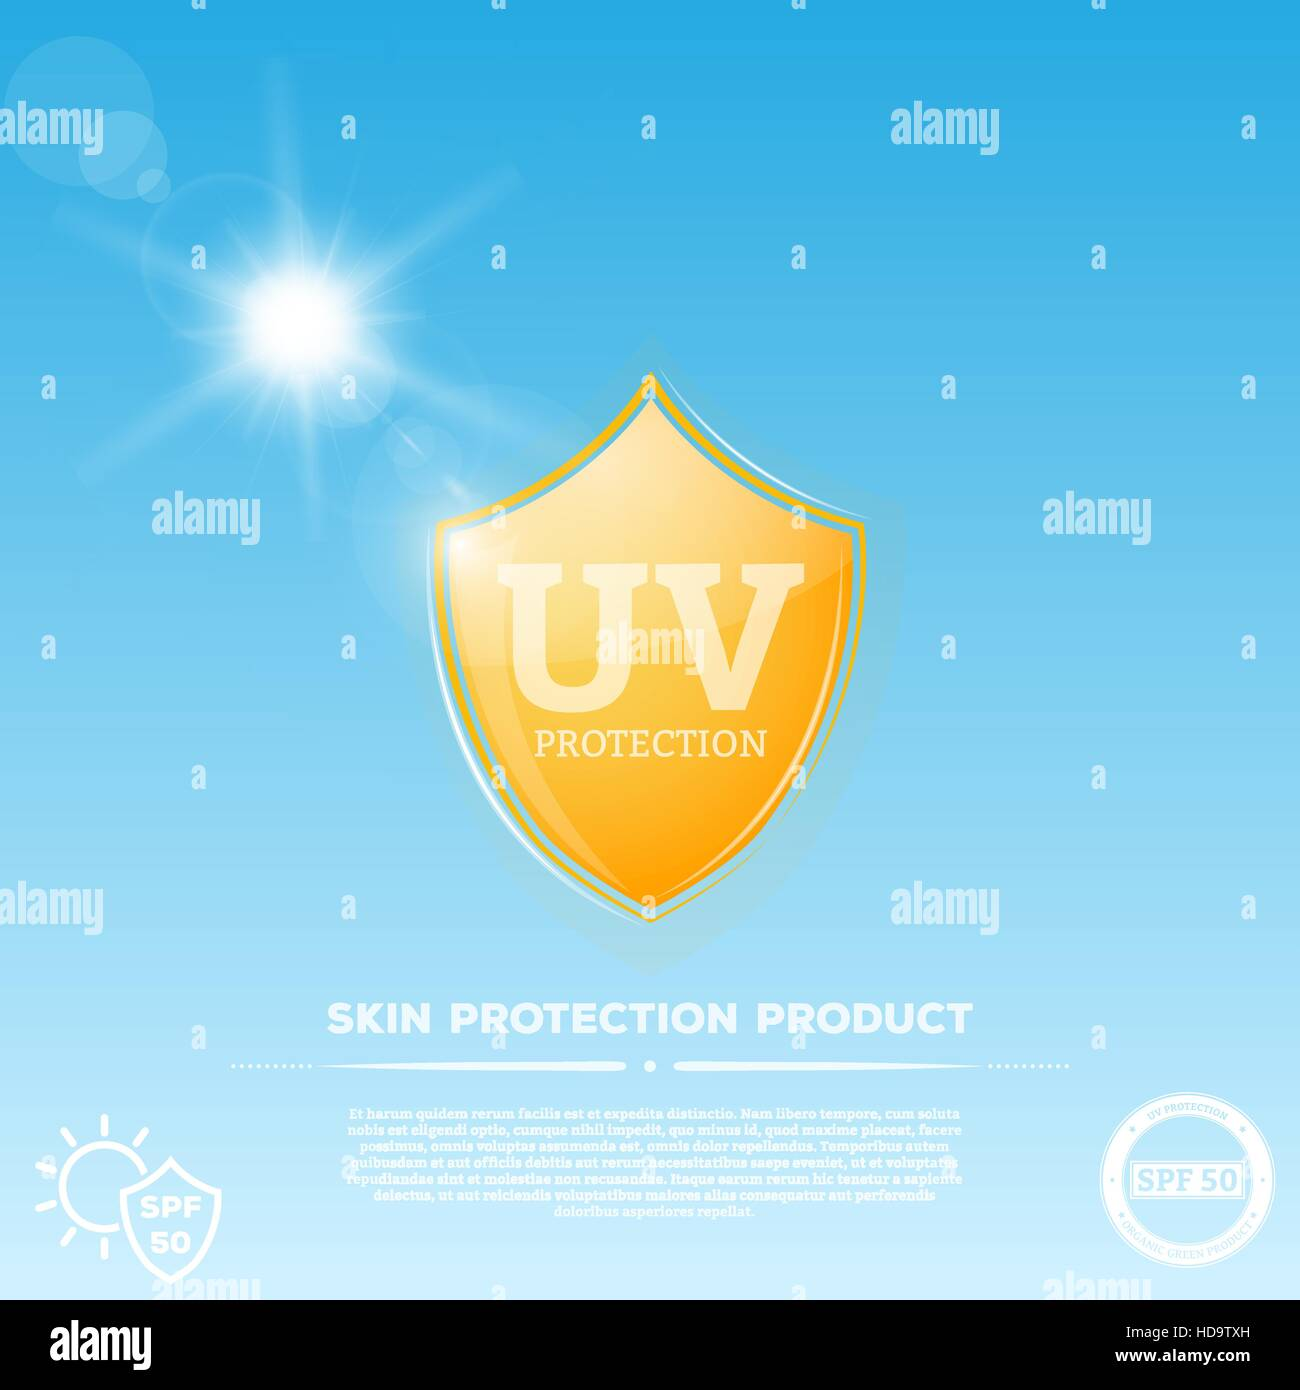 Ultraviolet Radiation Stock Photos Uv Protection Optical Yellow Fluor Glowing Shield With Sun Emblem Rays On Sky Background Representing